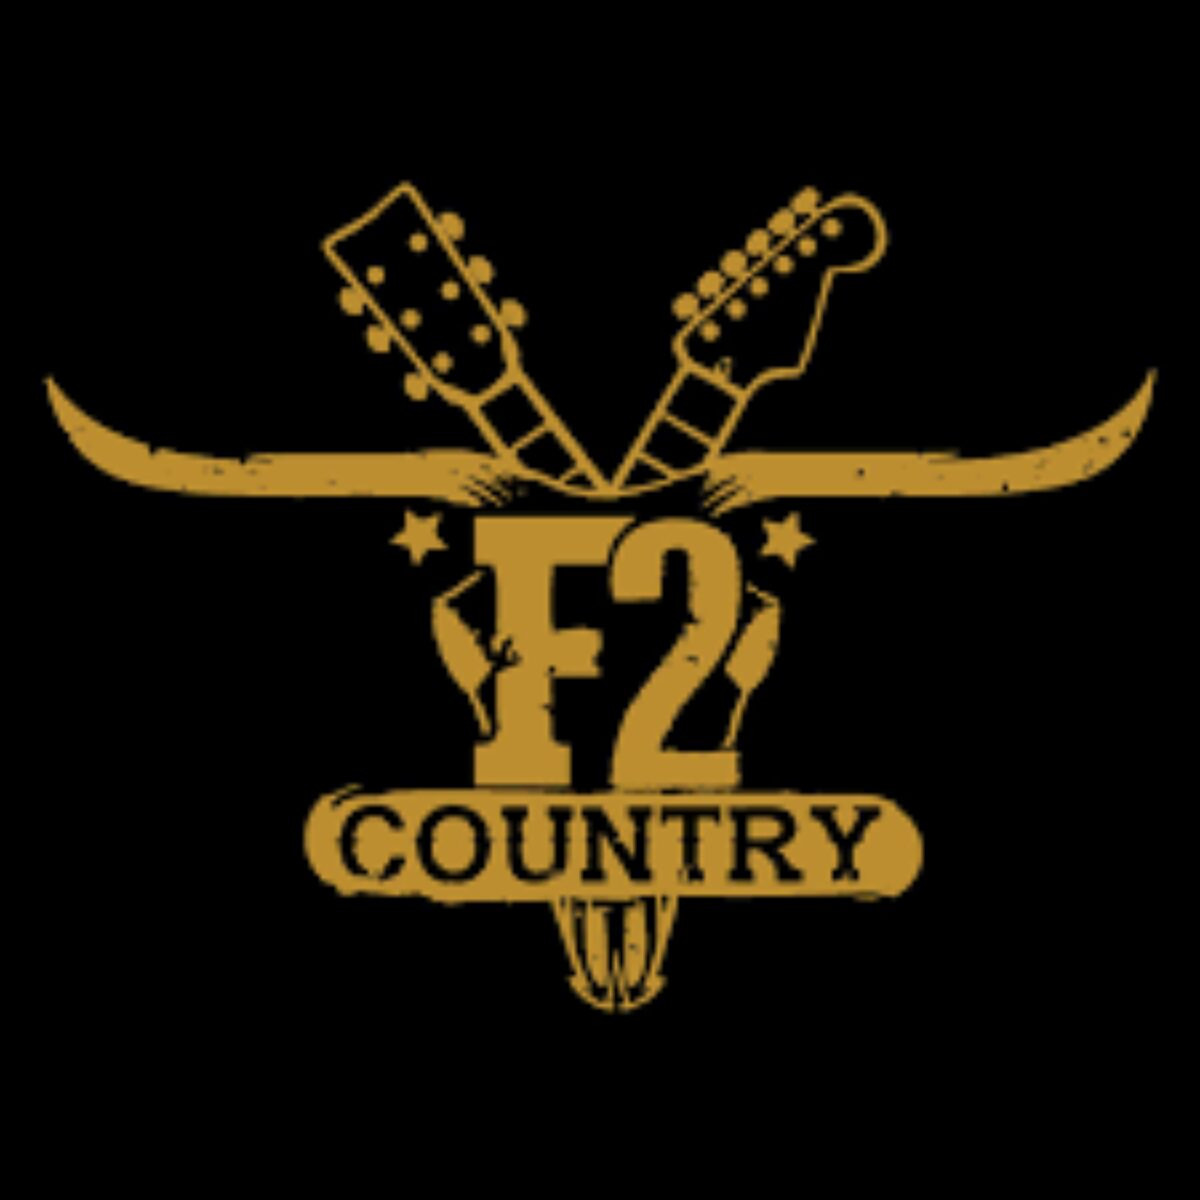 F2 country